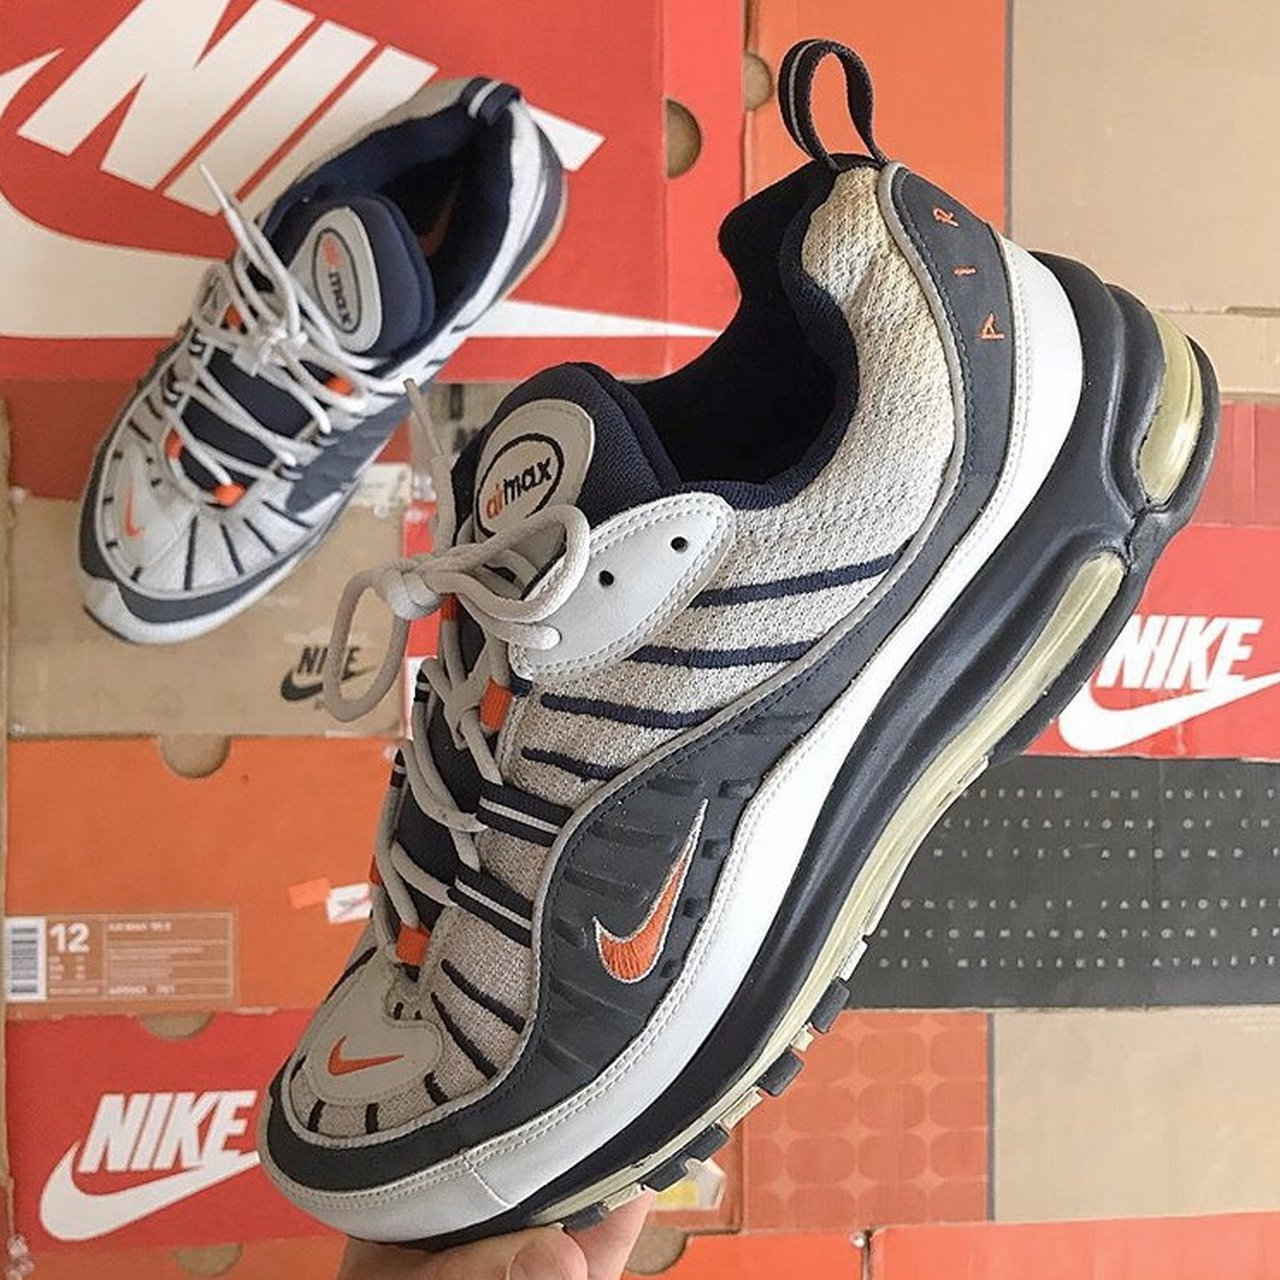 Nike Air Max 98 JD Exclusives Size